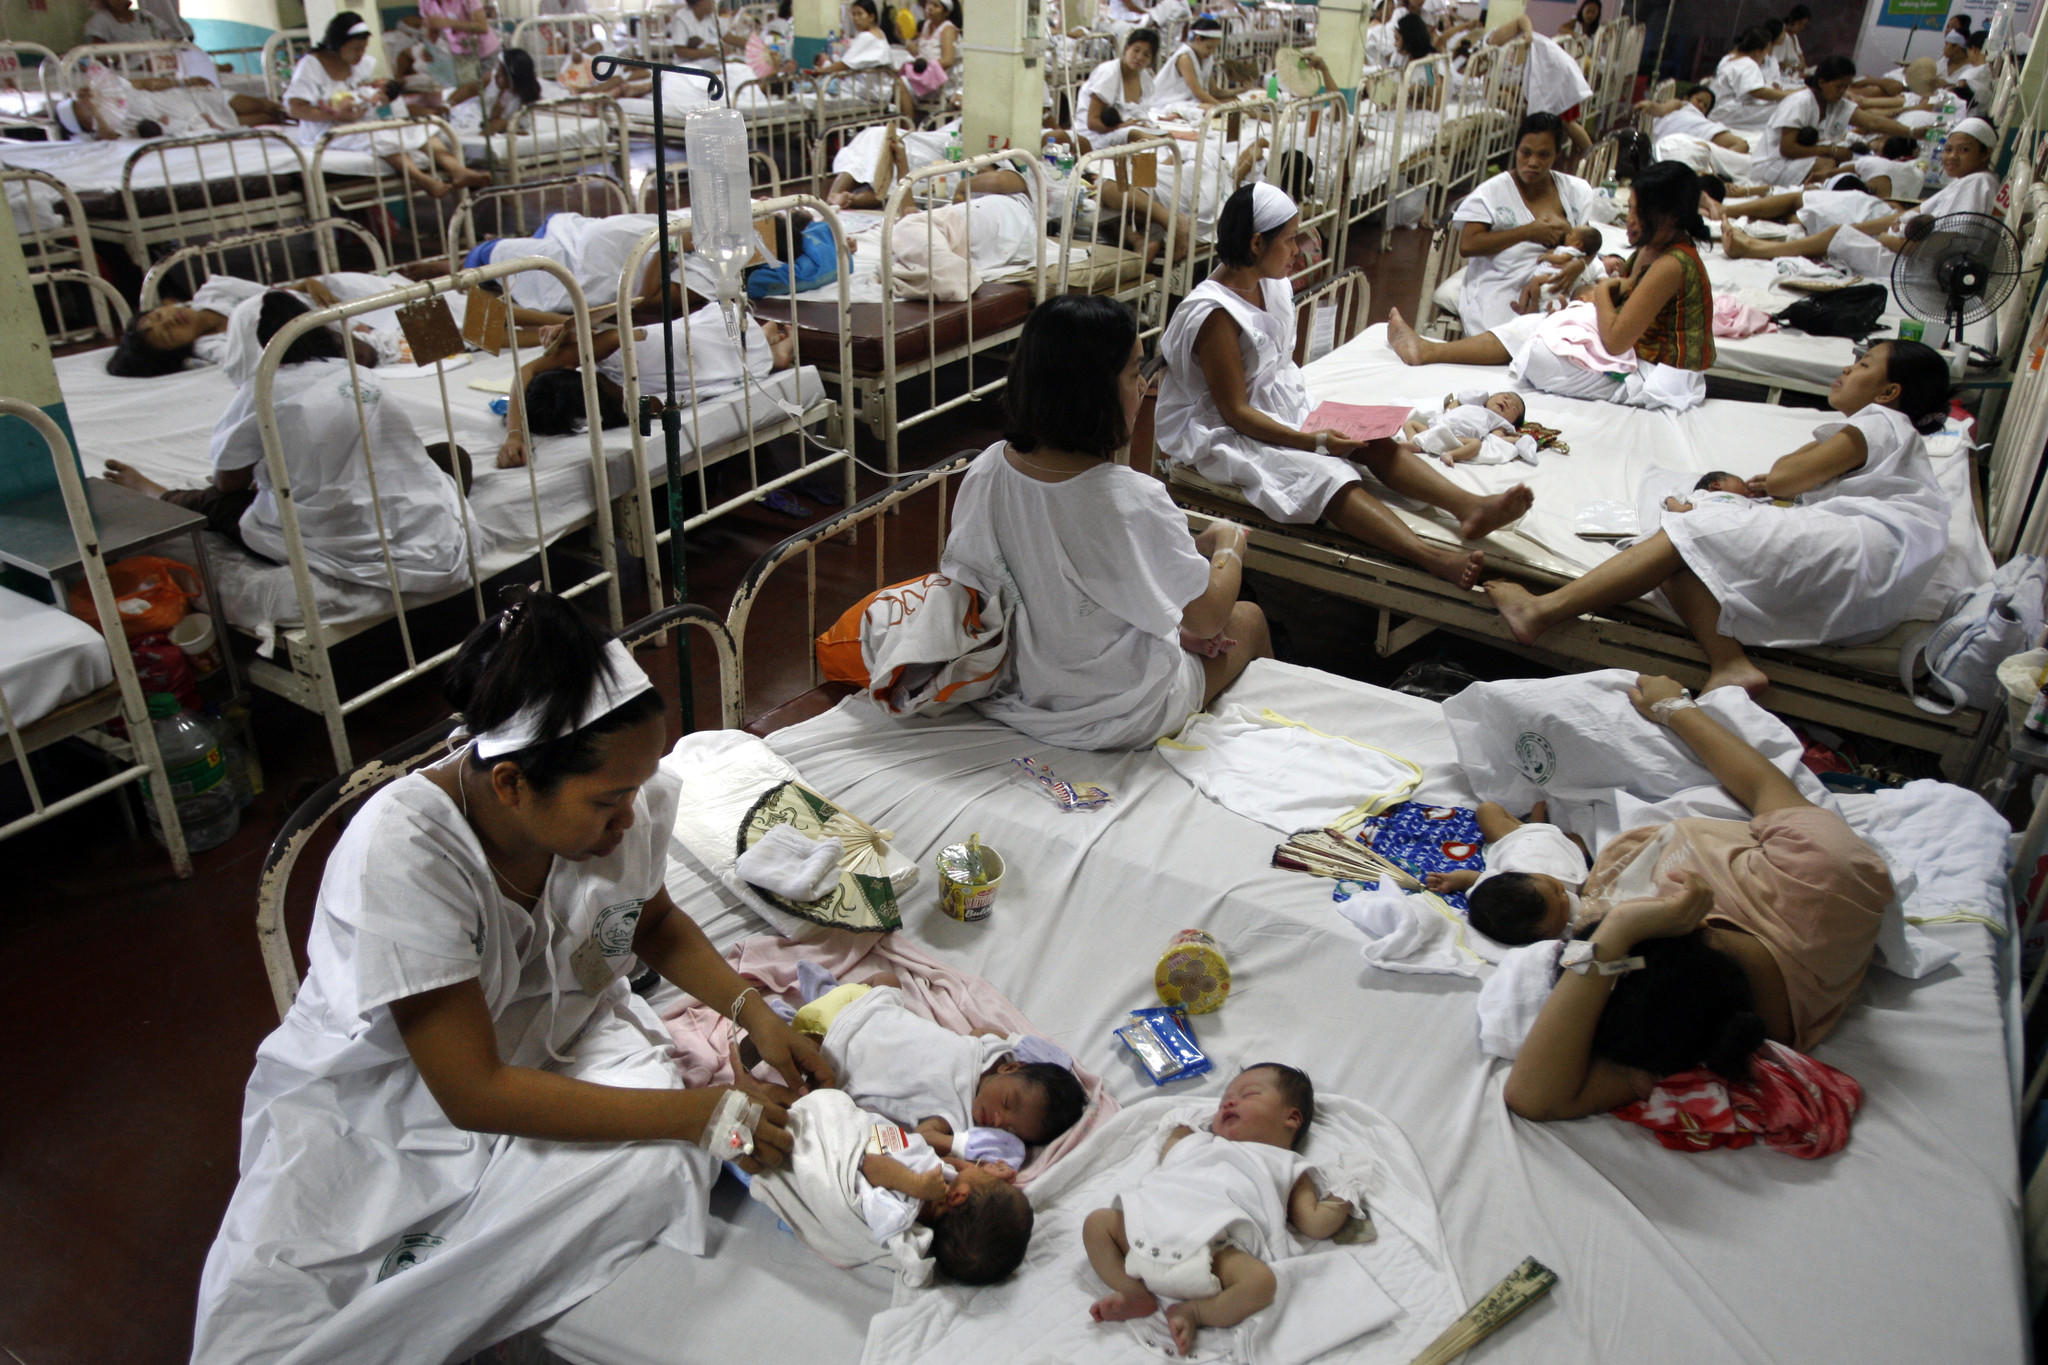 Women share beds after giving birth at Dr. Jose Fabella Memorial Hospital in Manila. The Philippine capital is one of the most densely populated places on Earth. A ban on contraception at public clinics there has put birth control out of the reach of most of the city's poor. (Rick Loomis / Los Angeles Times)